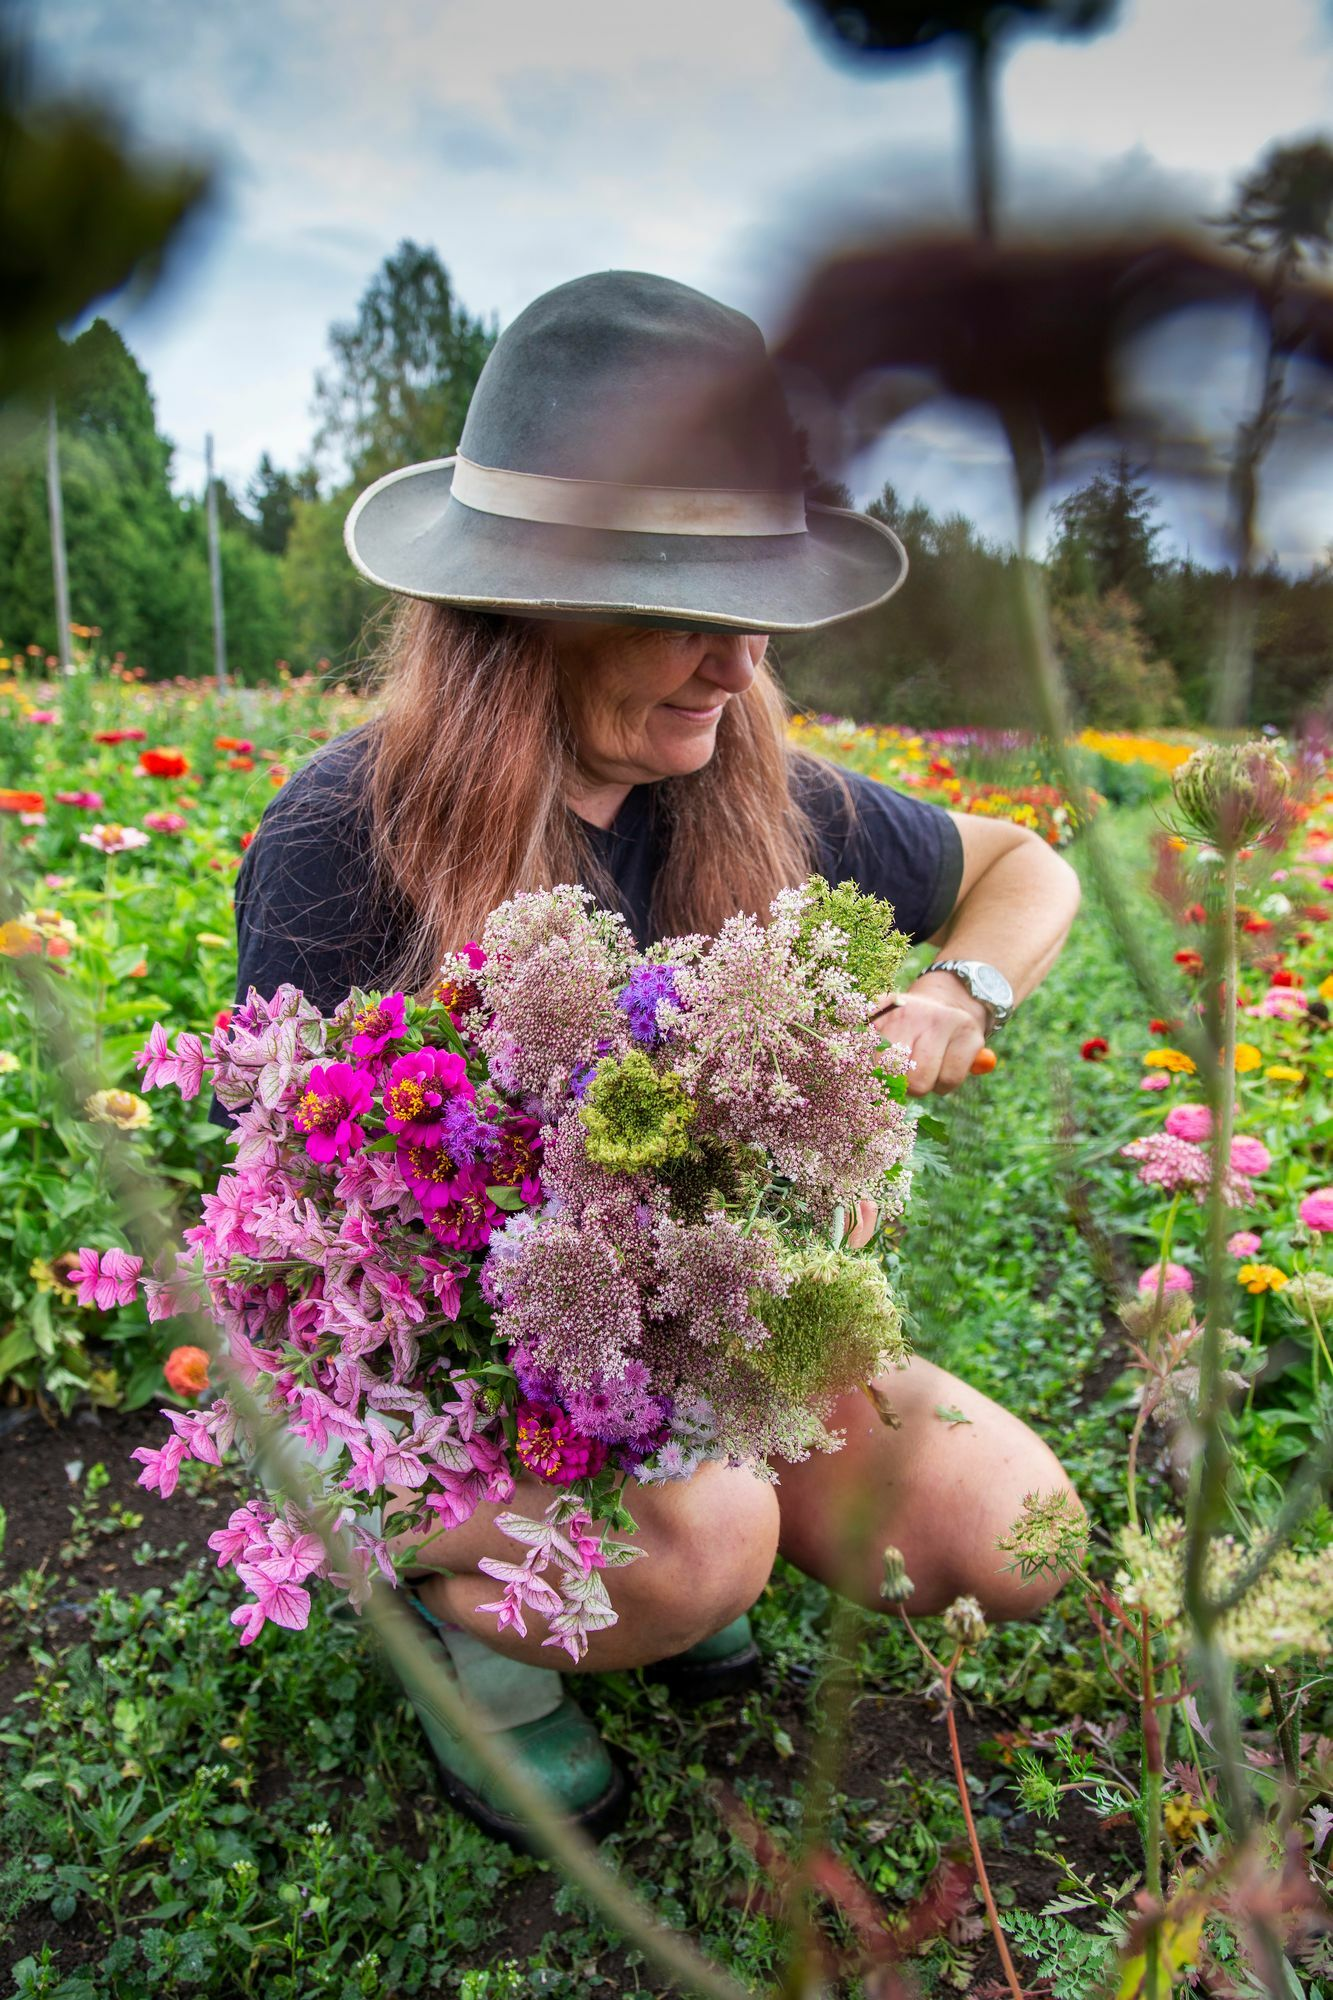 """""""Ecology is reflected in everything we do.  We also get joy from lost flowers when we dry and shred them into colorful confetti, which can be thrown on top of the wedding couple, """"says Hannele Ruoti."""